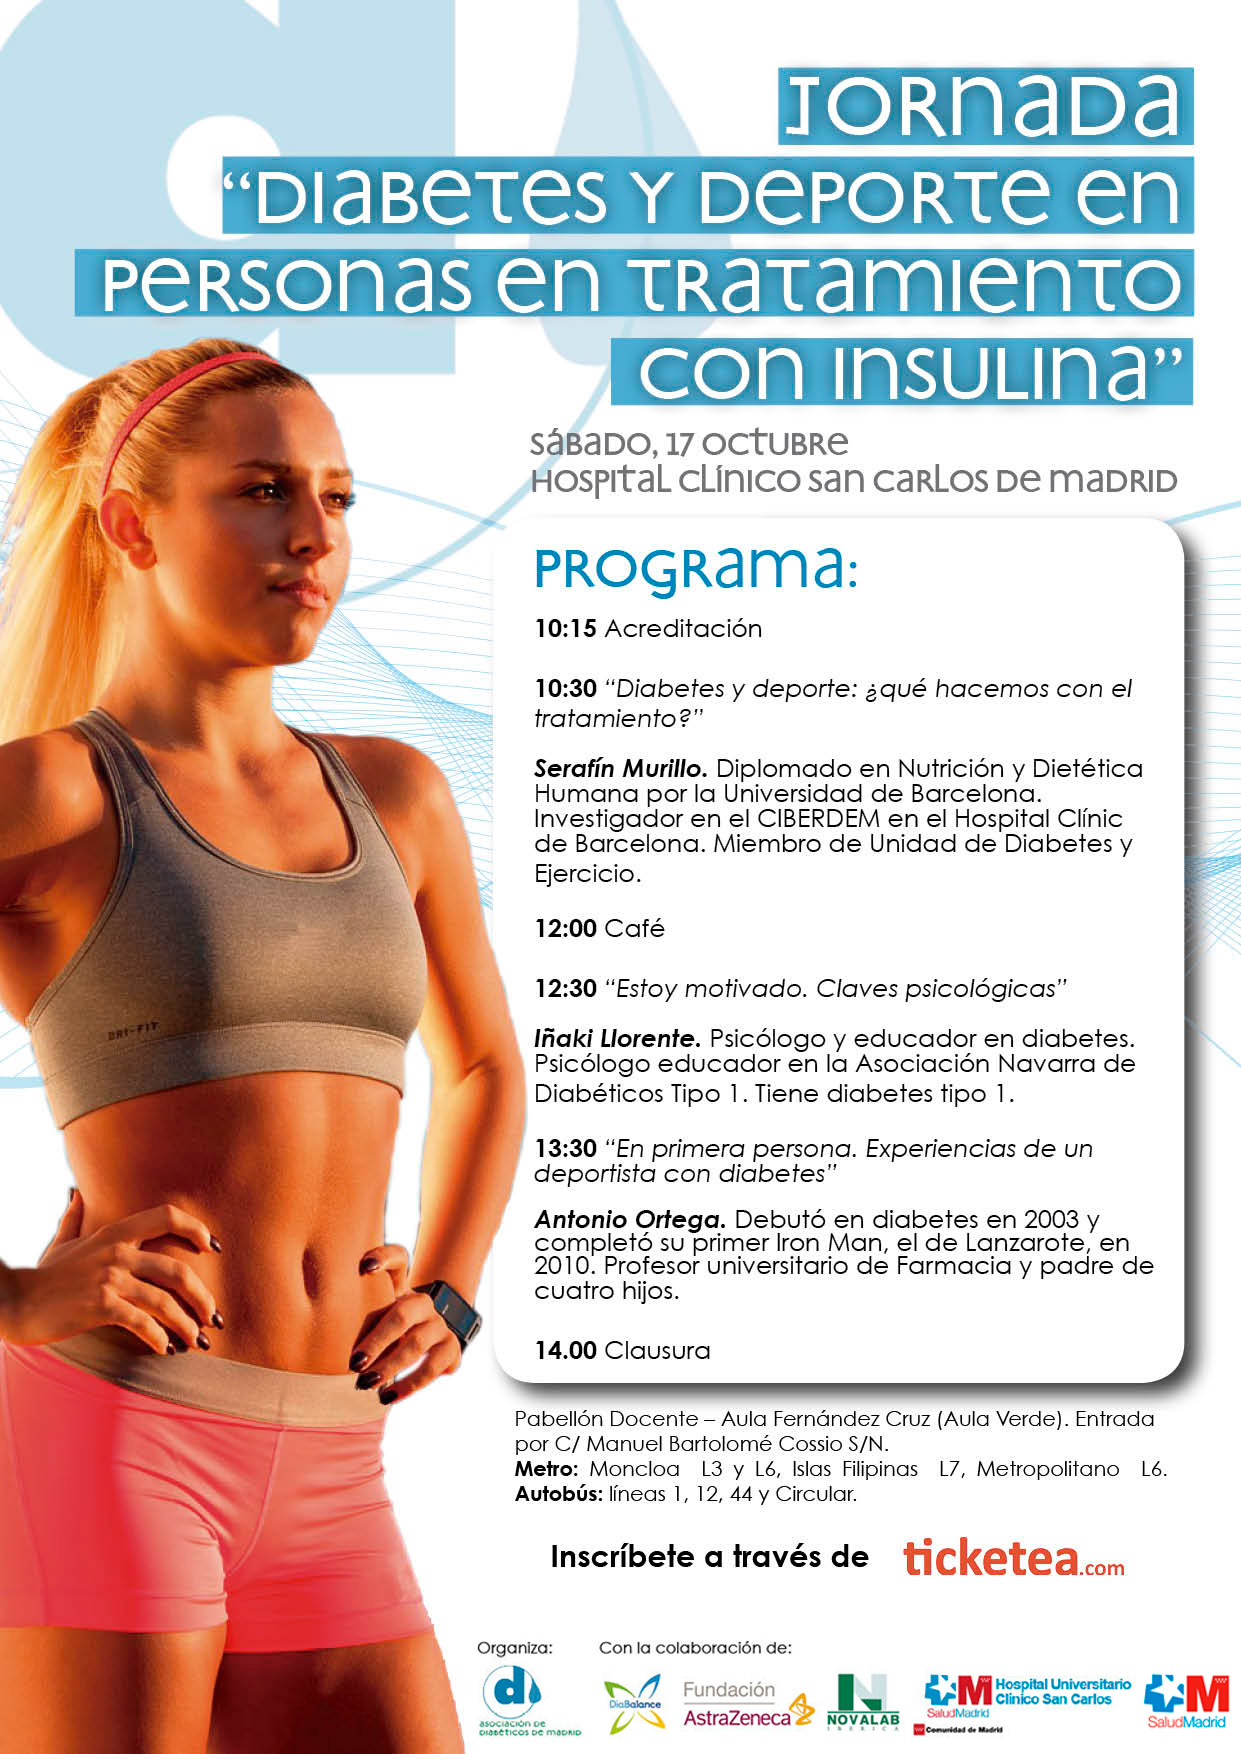 cartel_jornada_diabetes_deporte5